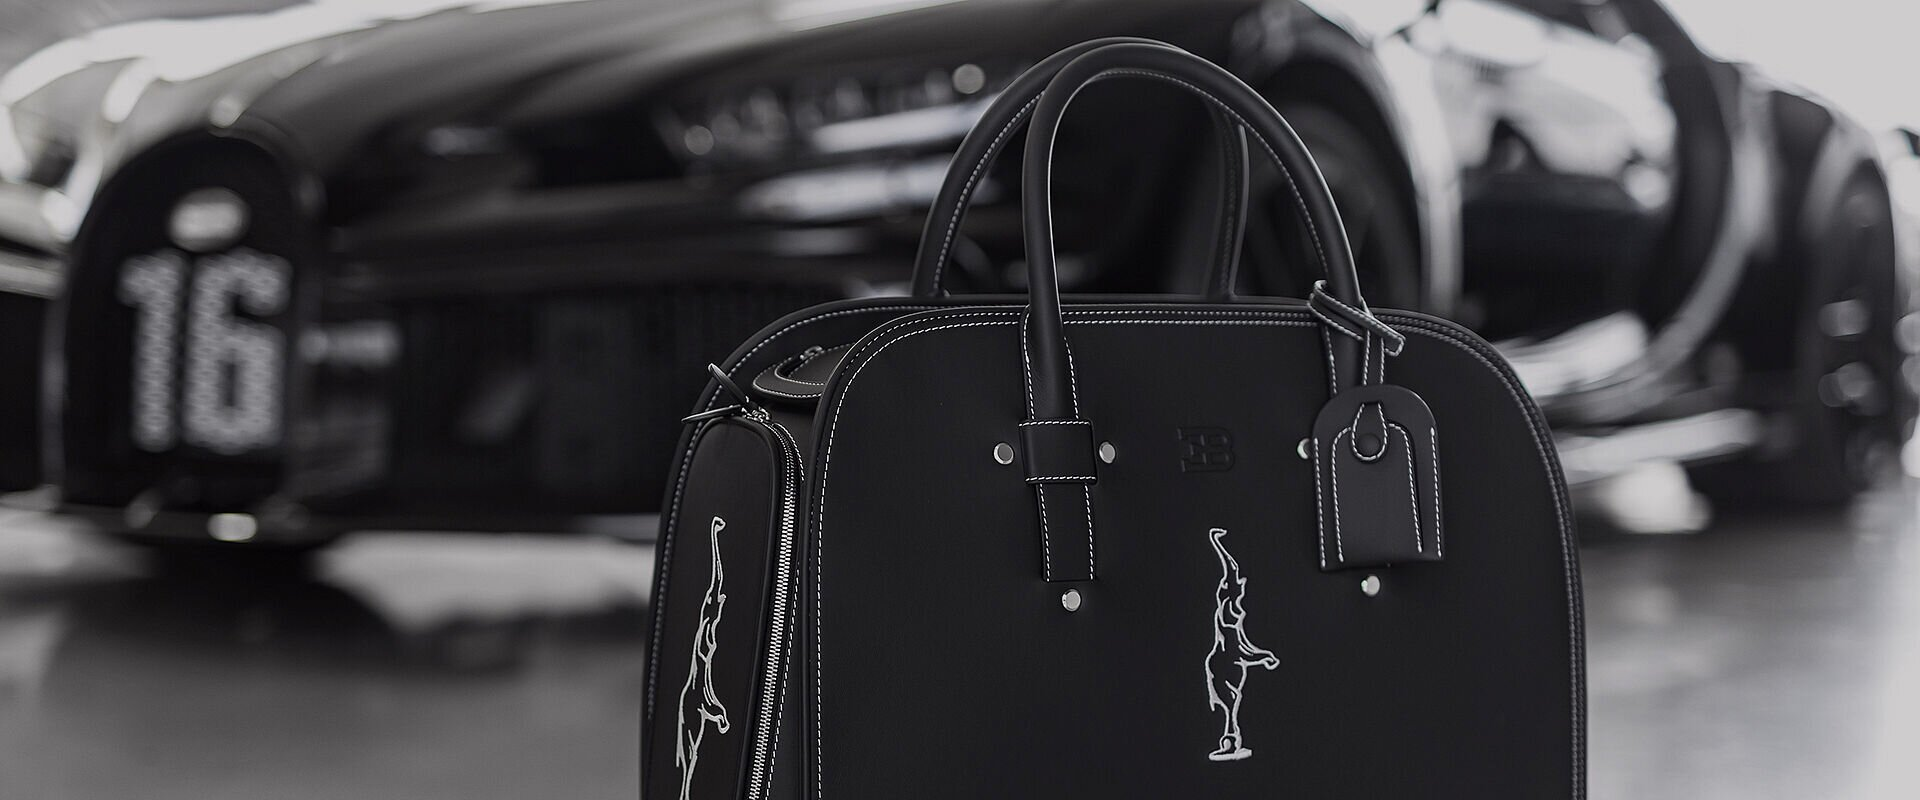 Exquisite luggage on a new level: Custom-fit Chiron baggage is as individual as every Bugatti